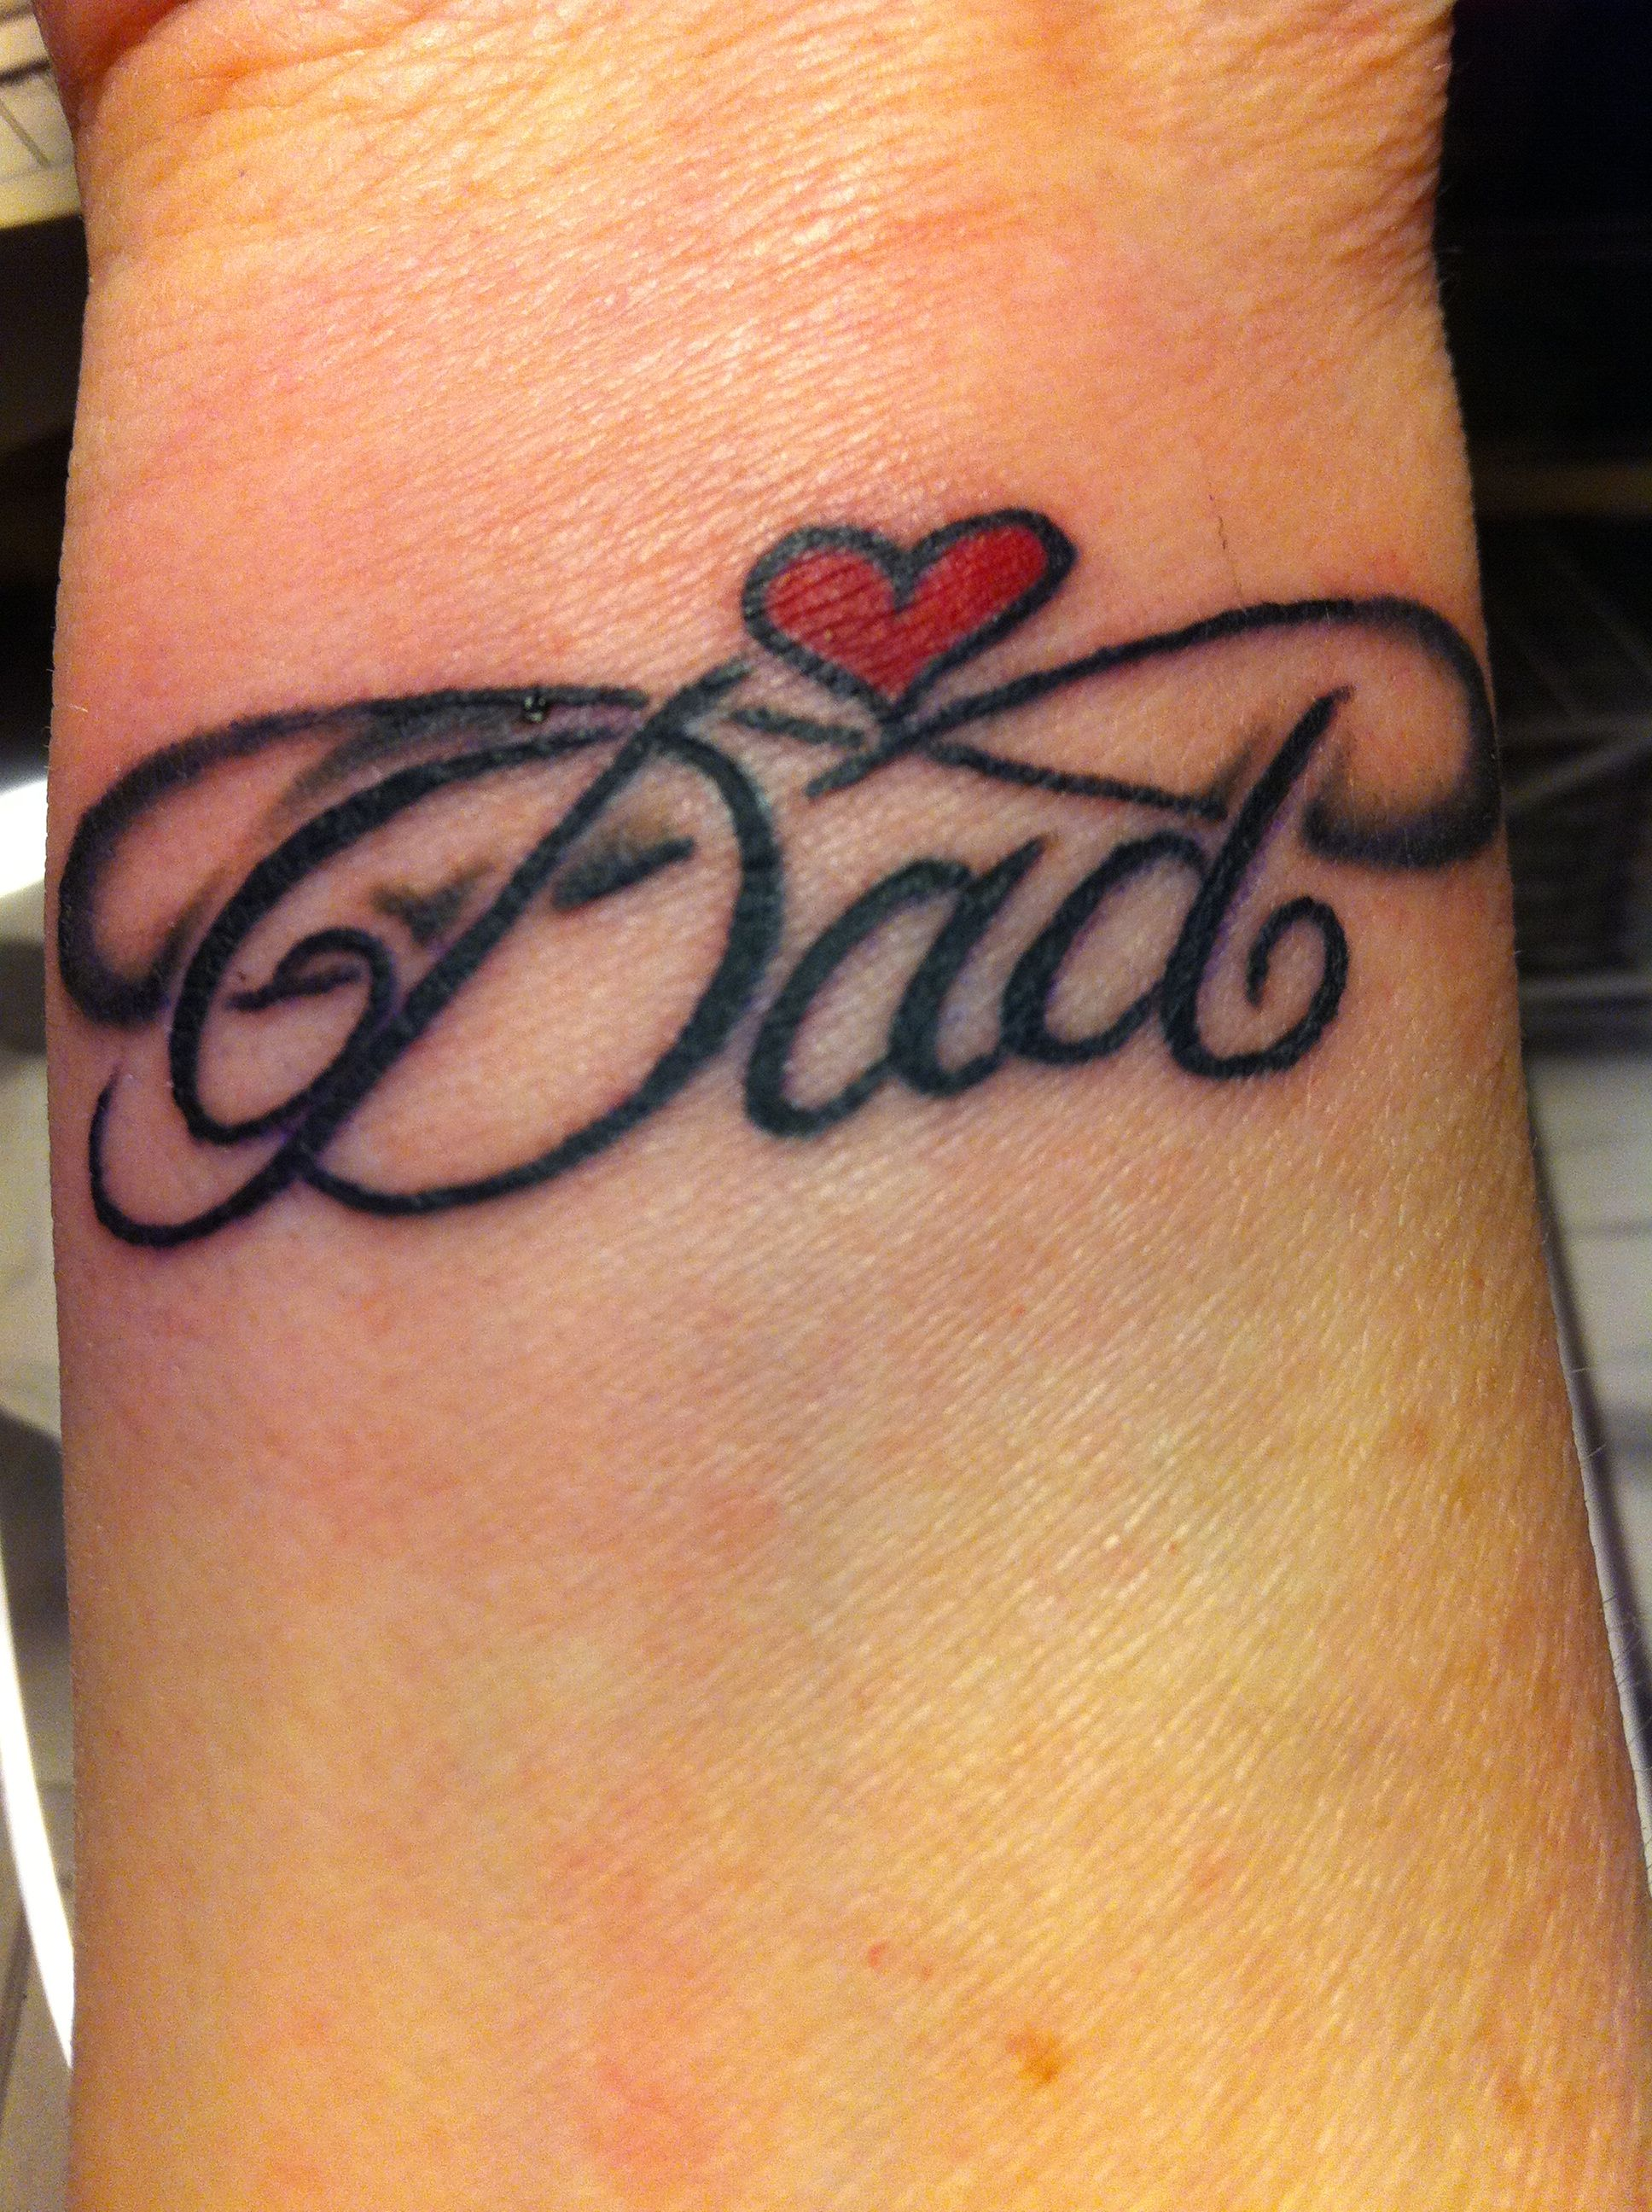 Tattoo Ideas Rip Dad: My Tattoo Done Today 13th February 2013 In Memory Of Dad